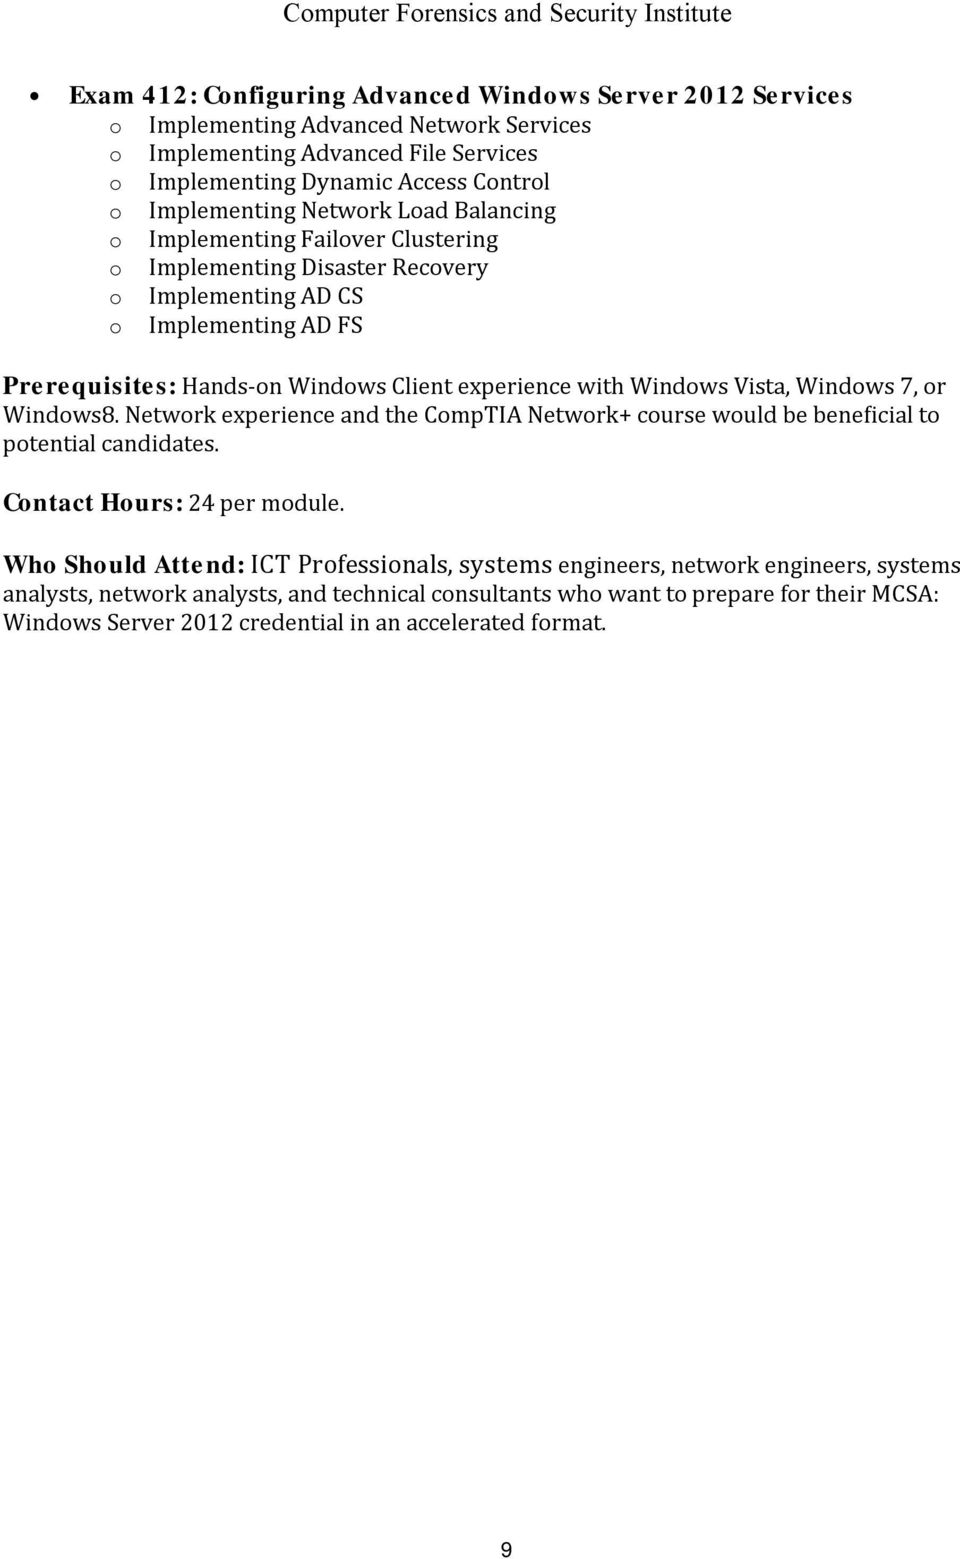 Windows Vista, Windows 7, or Windows8. Network experience and the CompTIA Network+ course would be beneficial to potential candidates. Contact Hours: 24 per module.